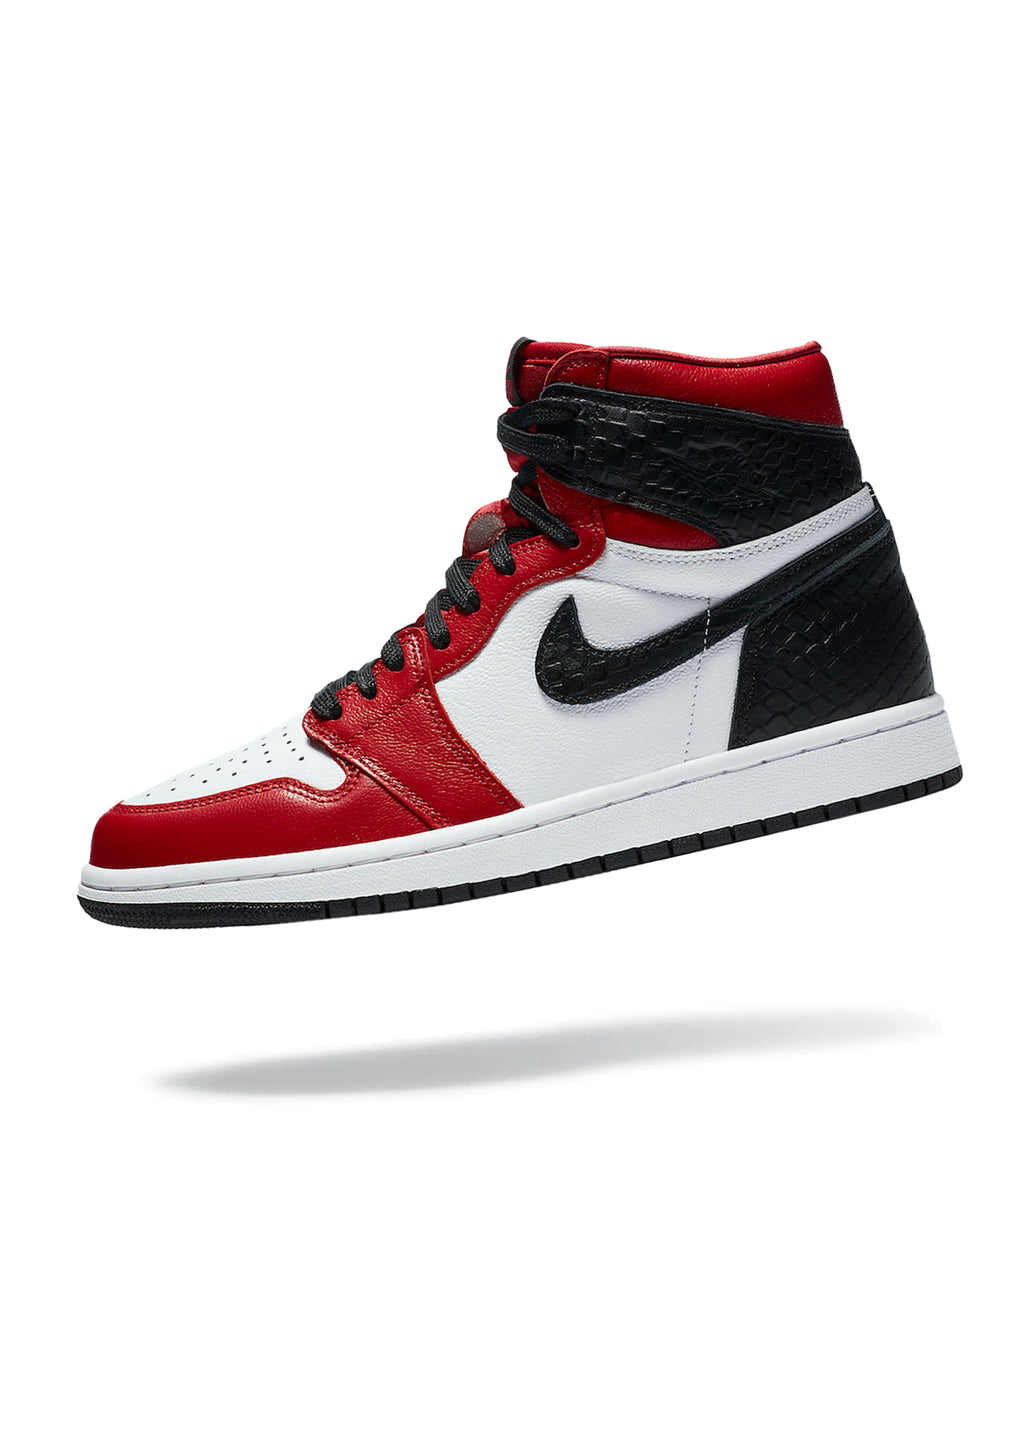 Jordan 1 high  Satin Snake Chicago